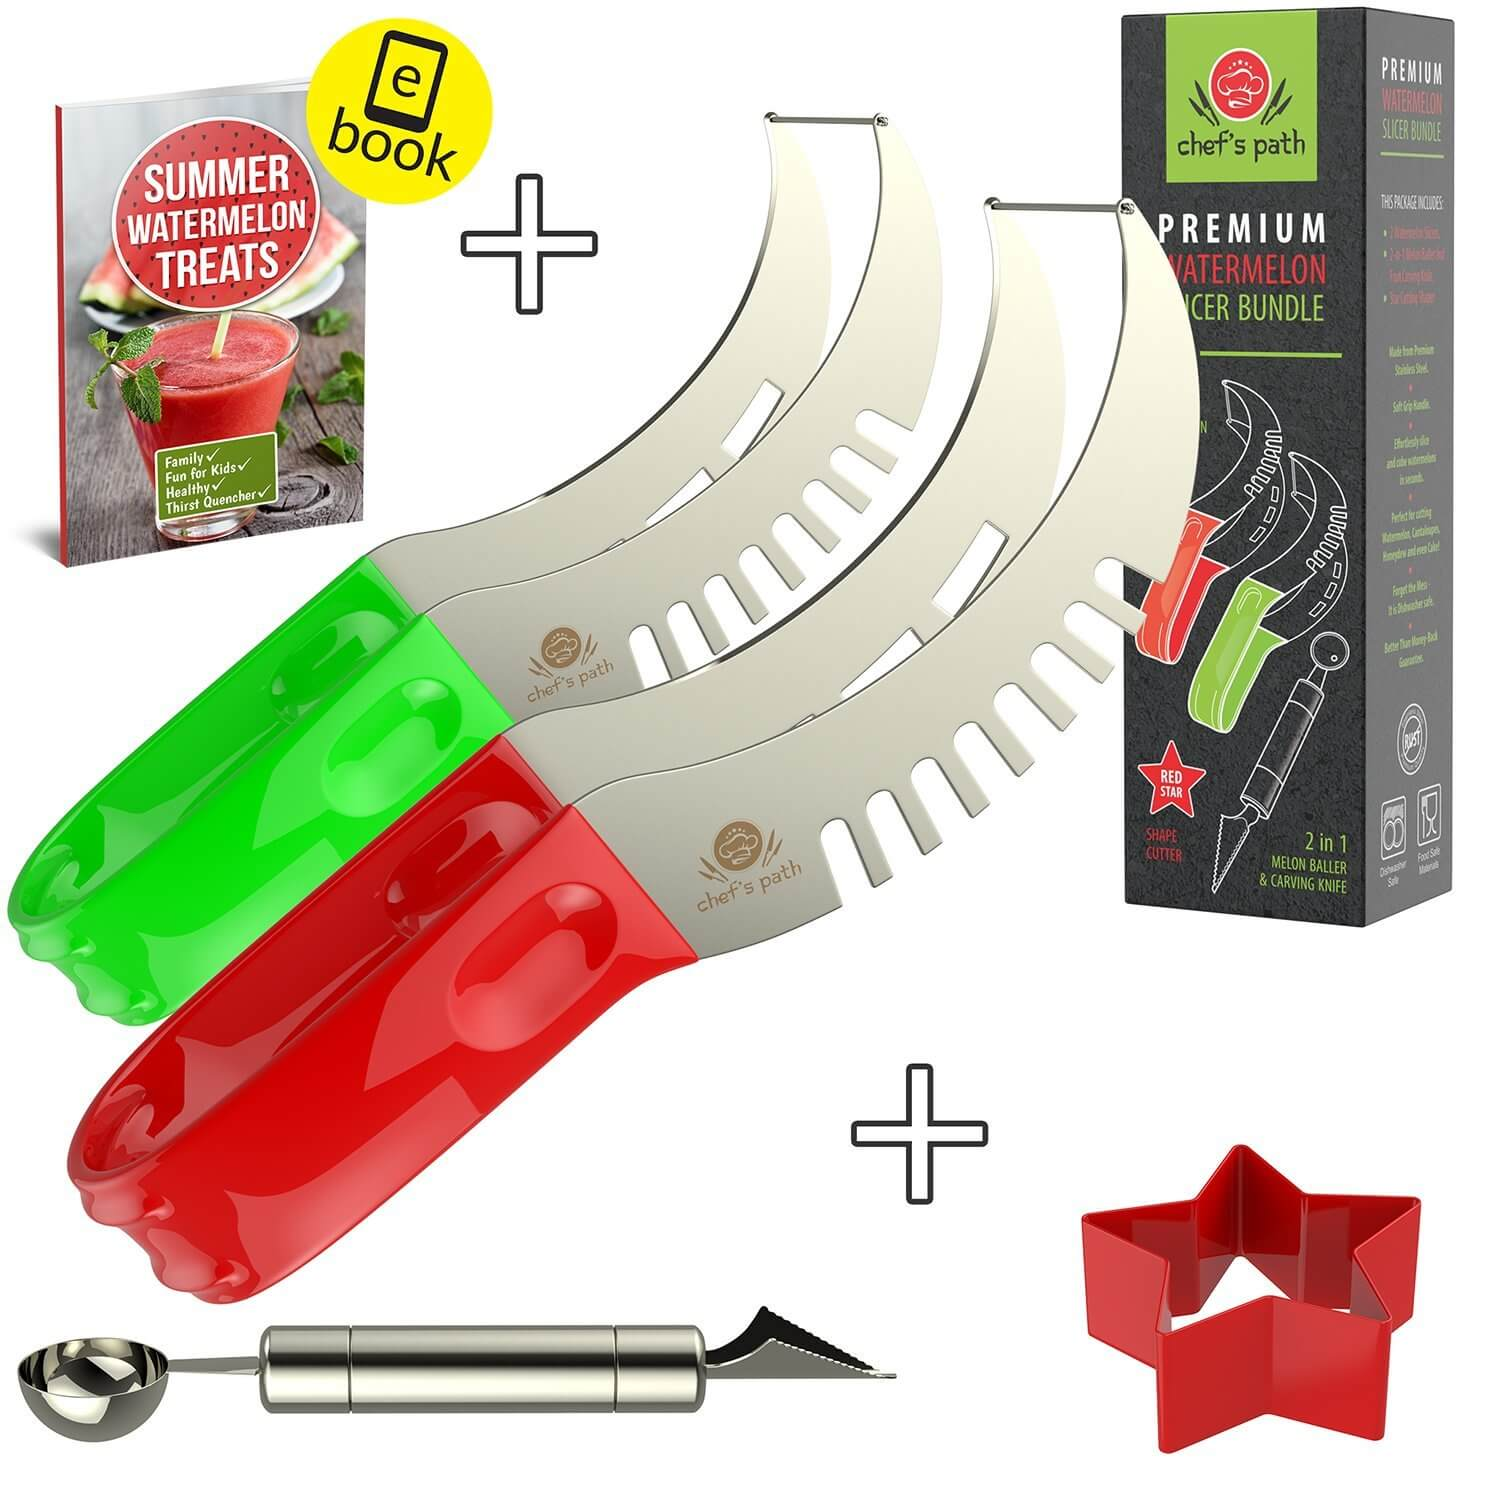 Chef's Path BEST WATERMELON SLICER (2-Pack)